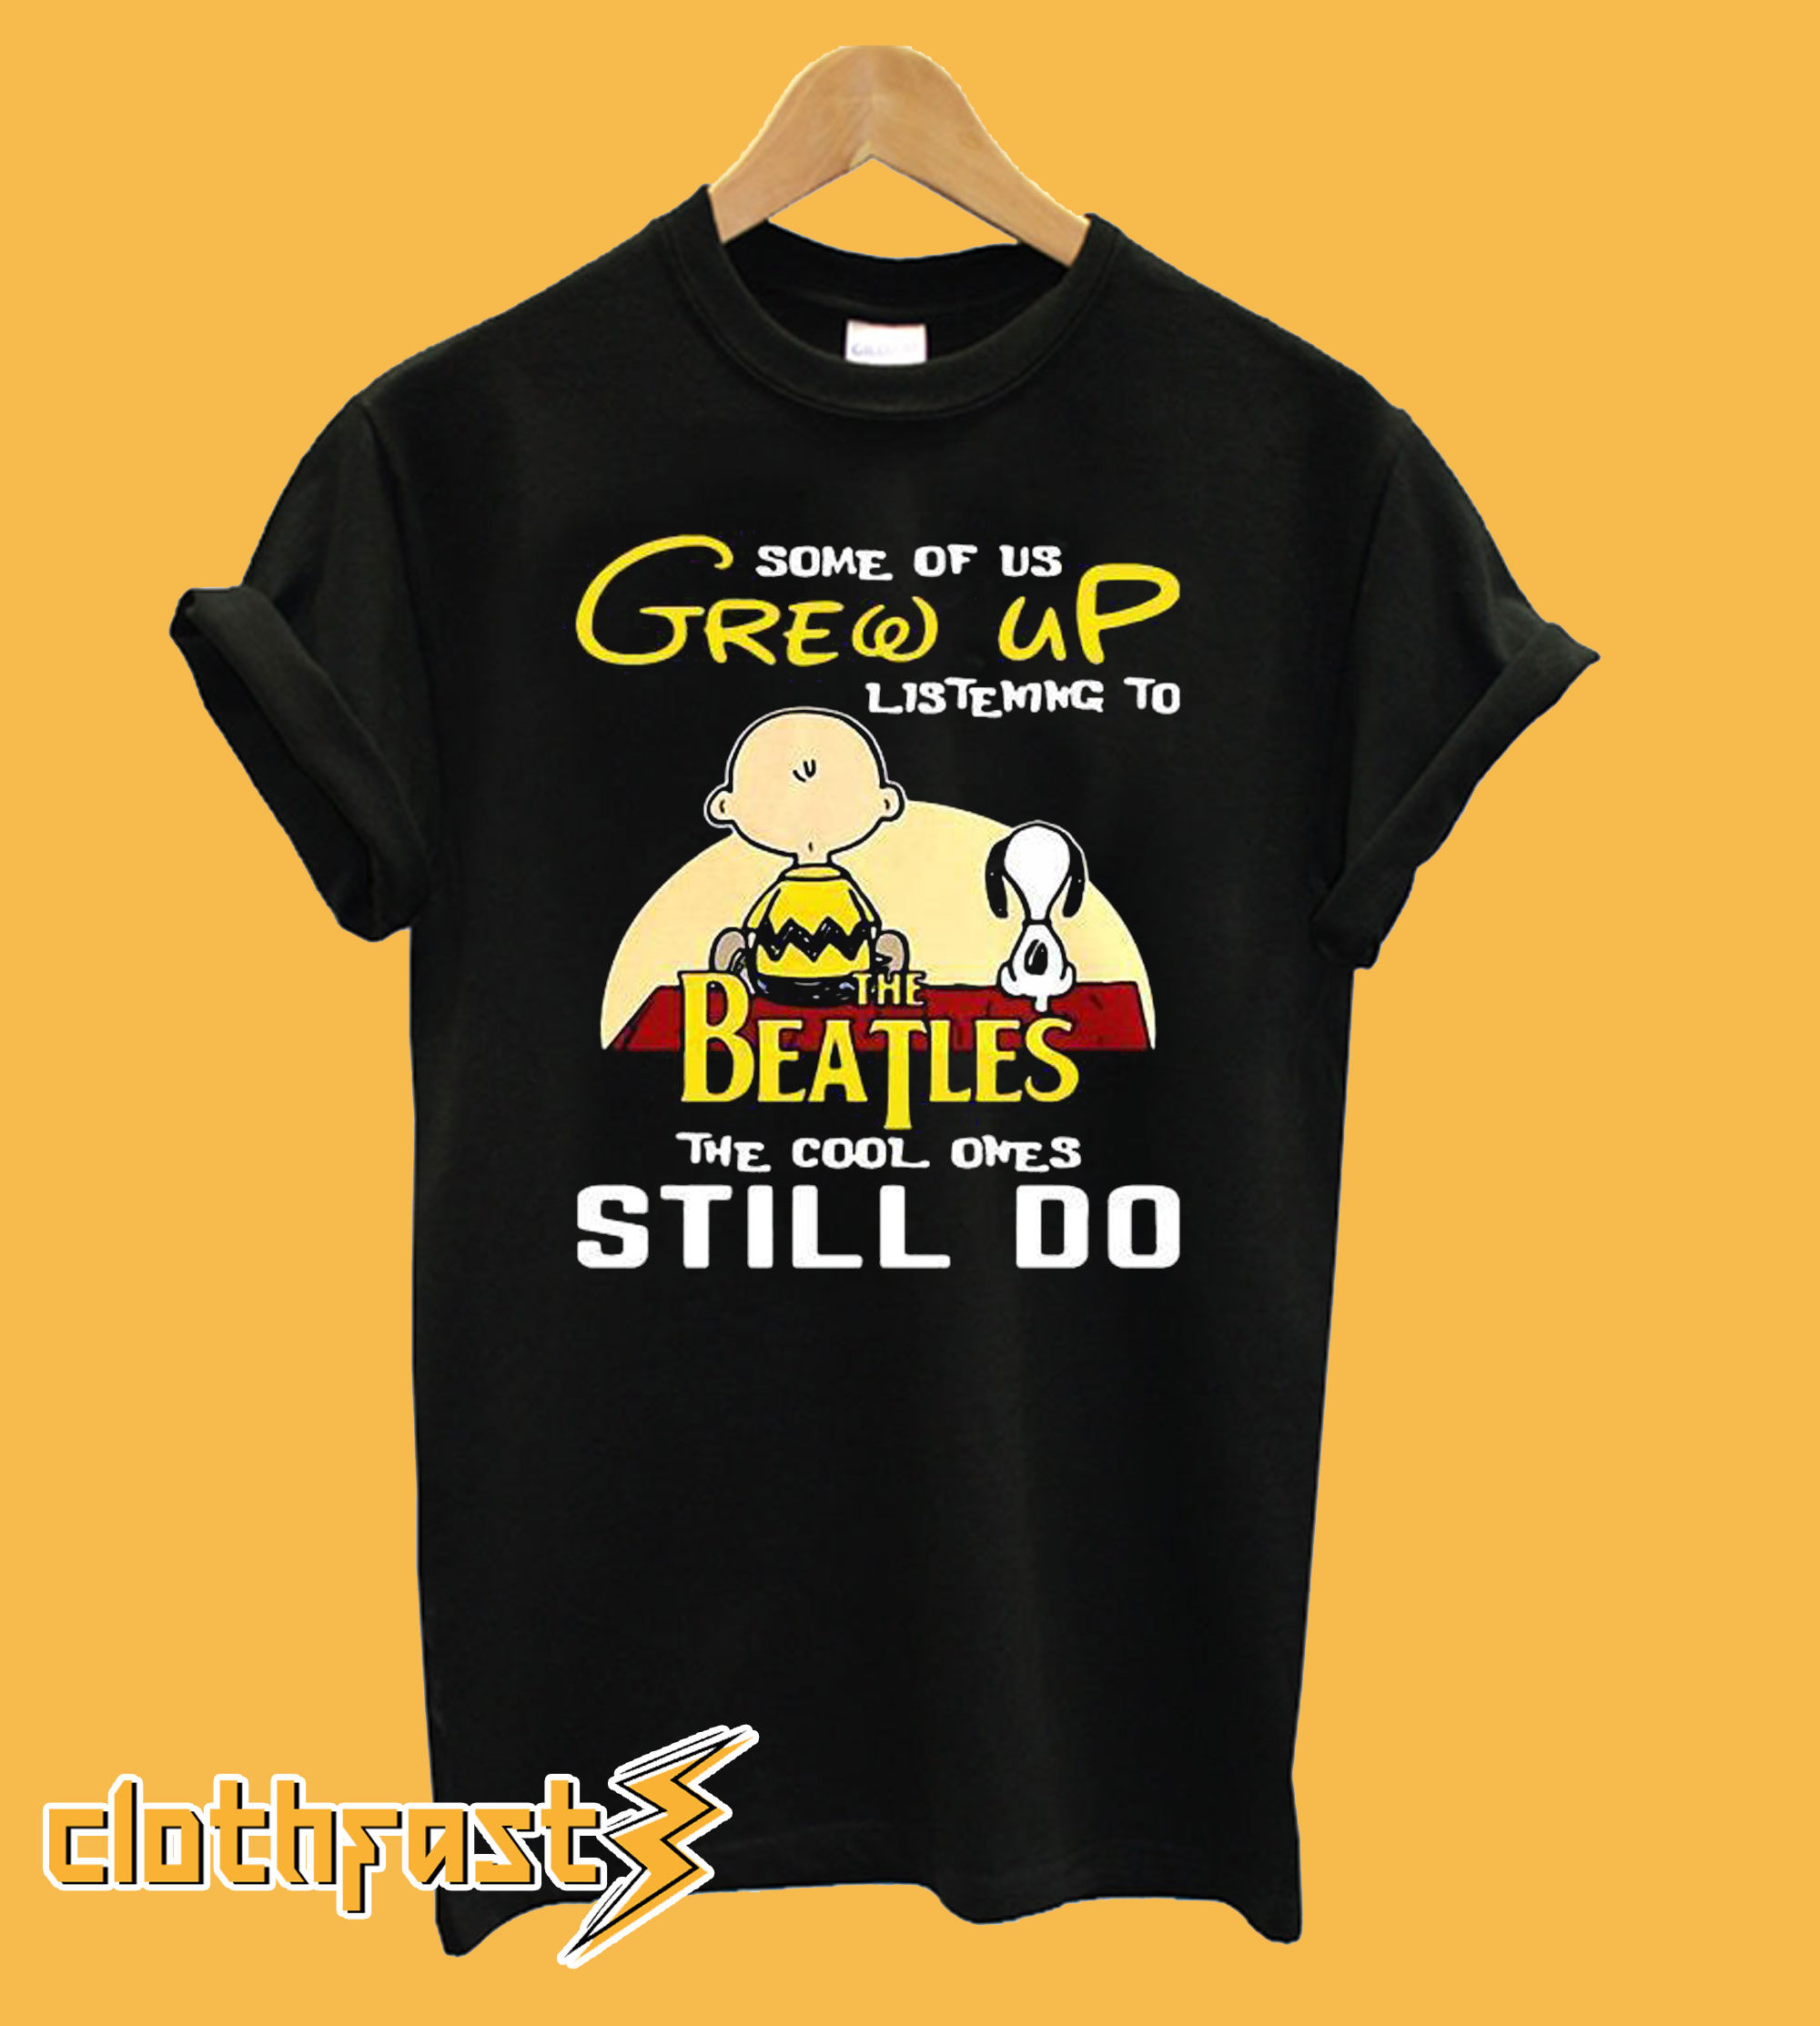 Some of us grew up listening to The Beatles the cool ones still do T-shirt